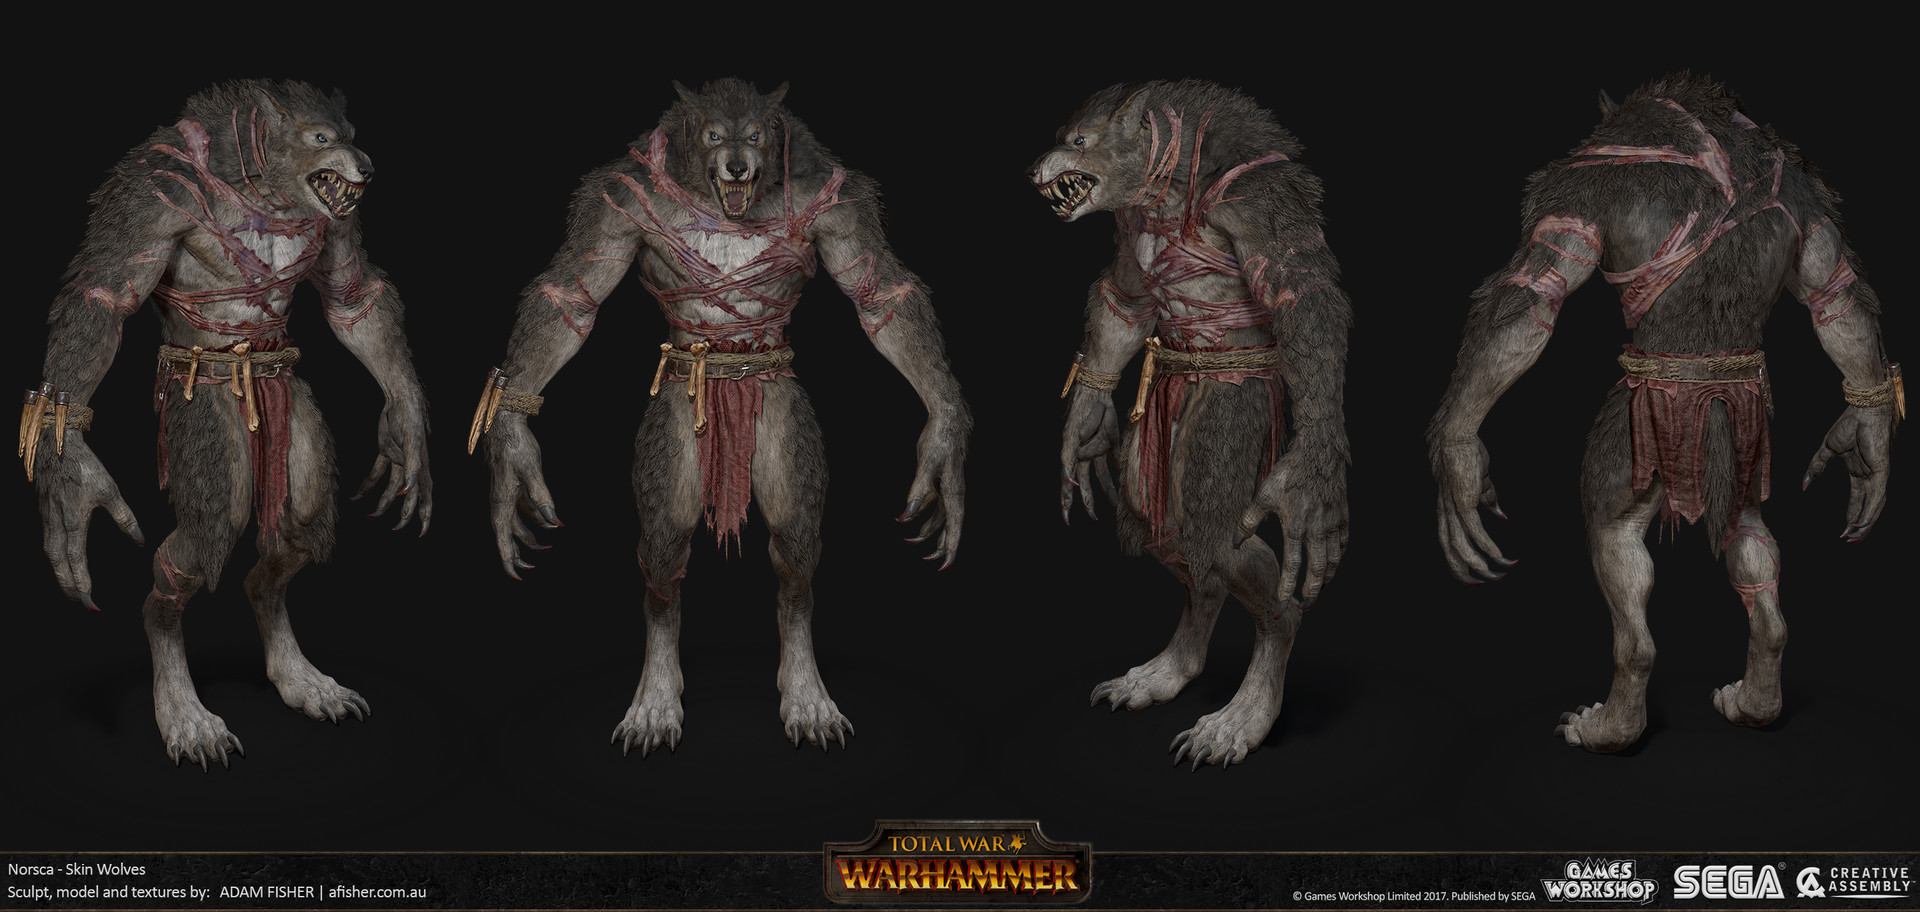 Adam fisher afisher norsca skin wolves03